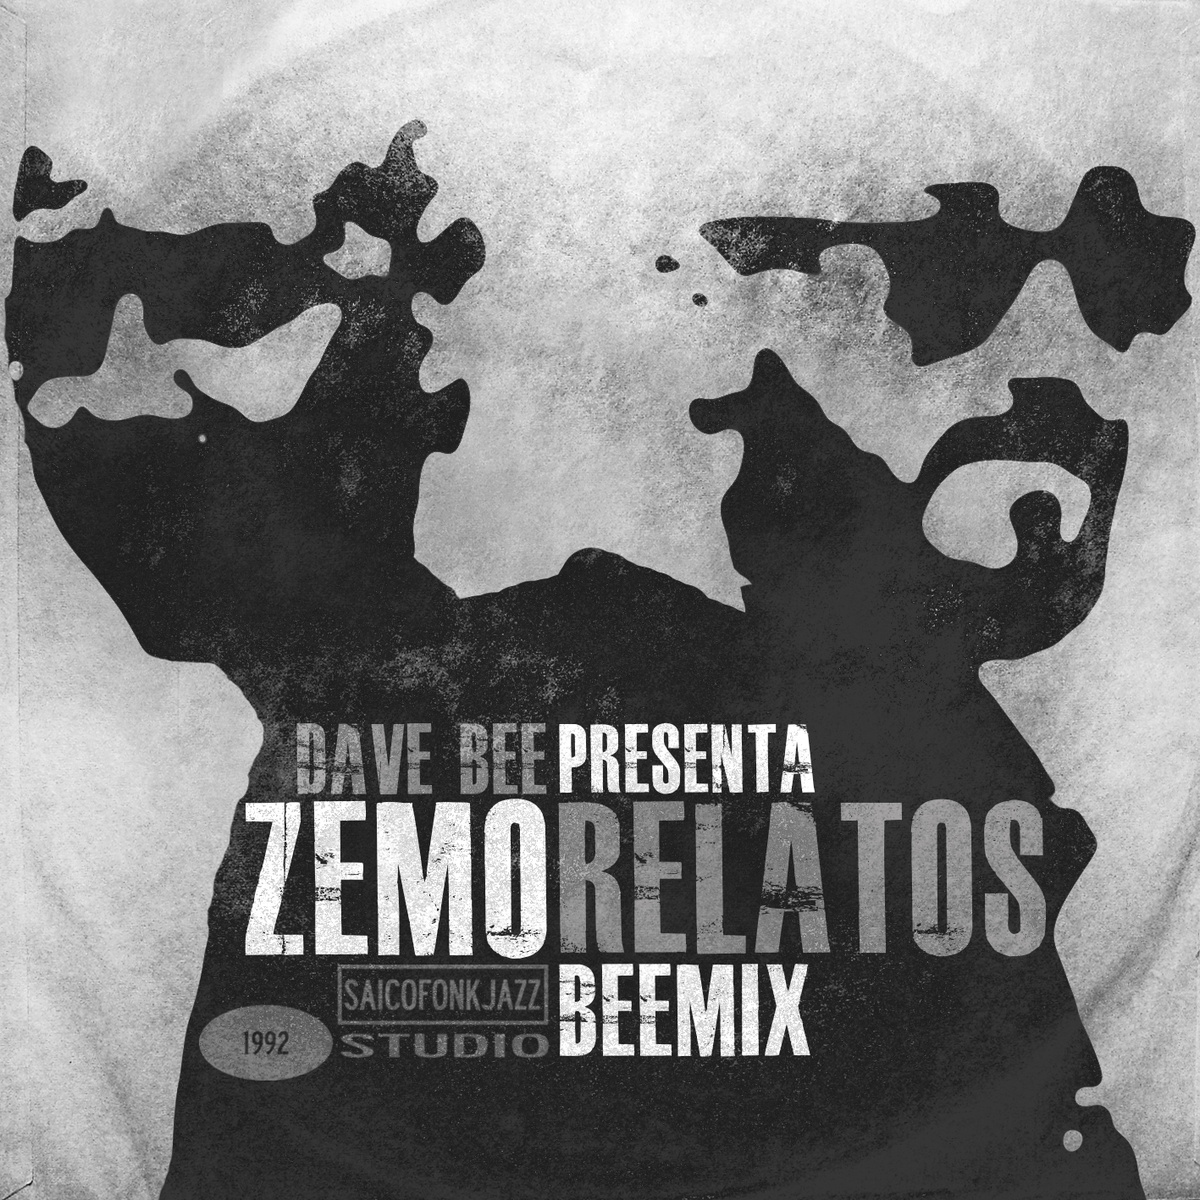 Zemo_-_relatos__beemix_